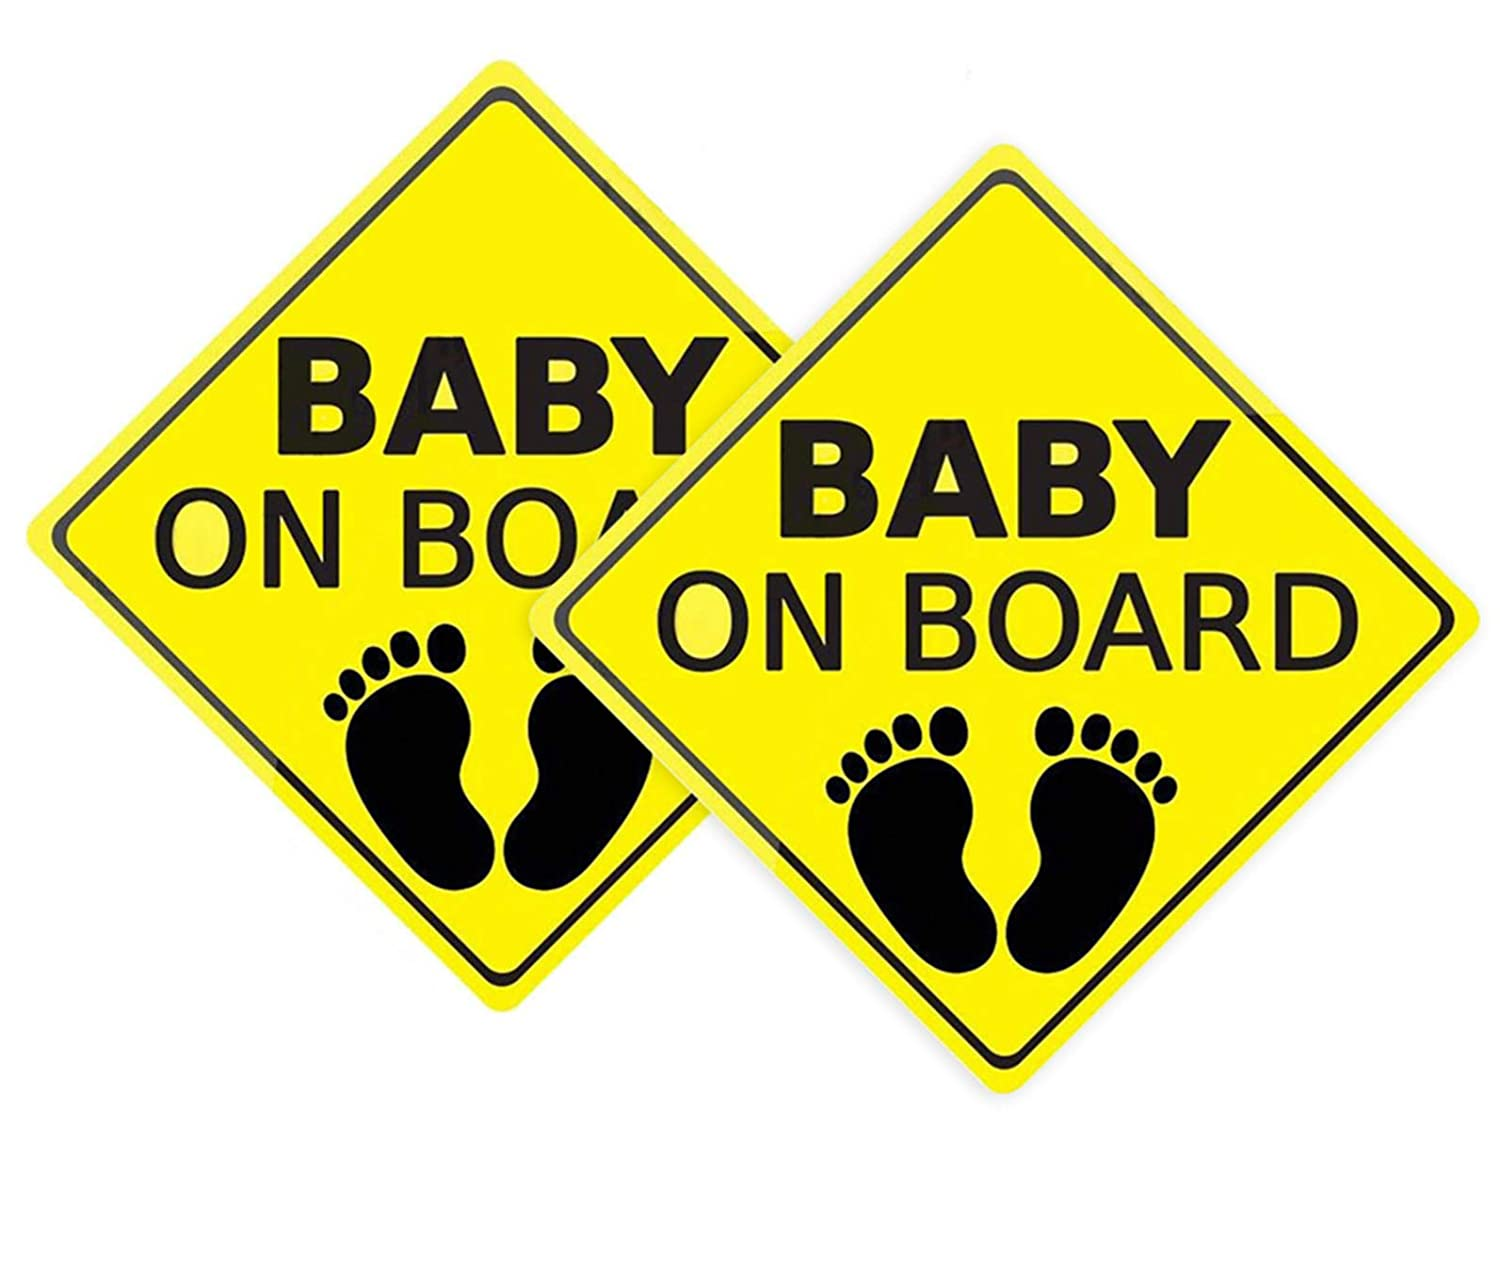 iFCOW Baby ON Board Sticker Car Decals Safety Signs Self-Adhesive Easy to Install Waterproof Long to Last